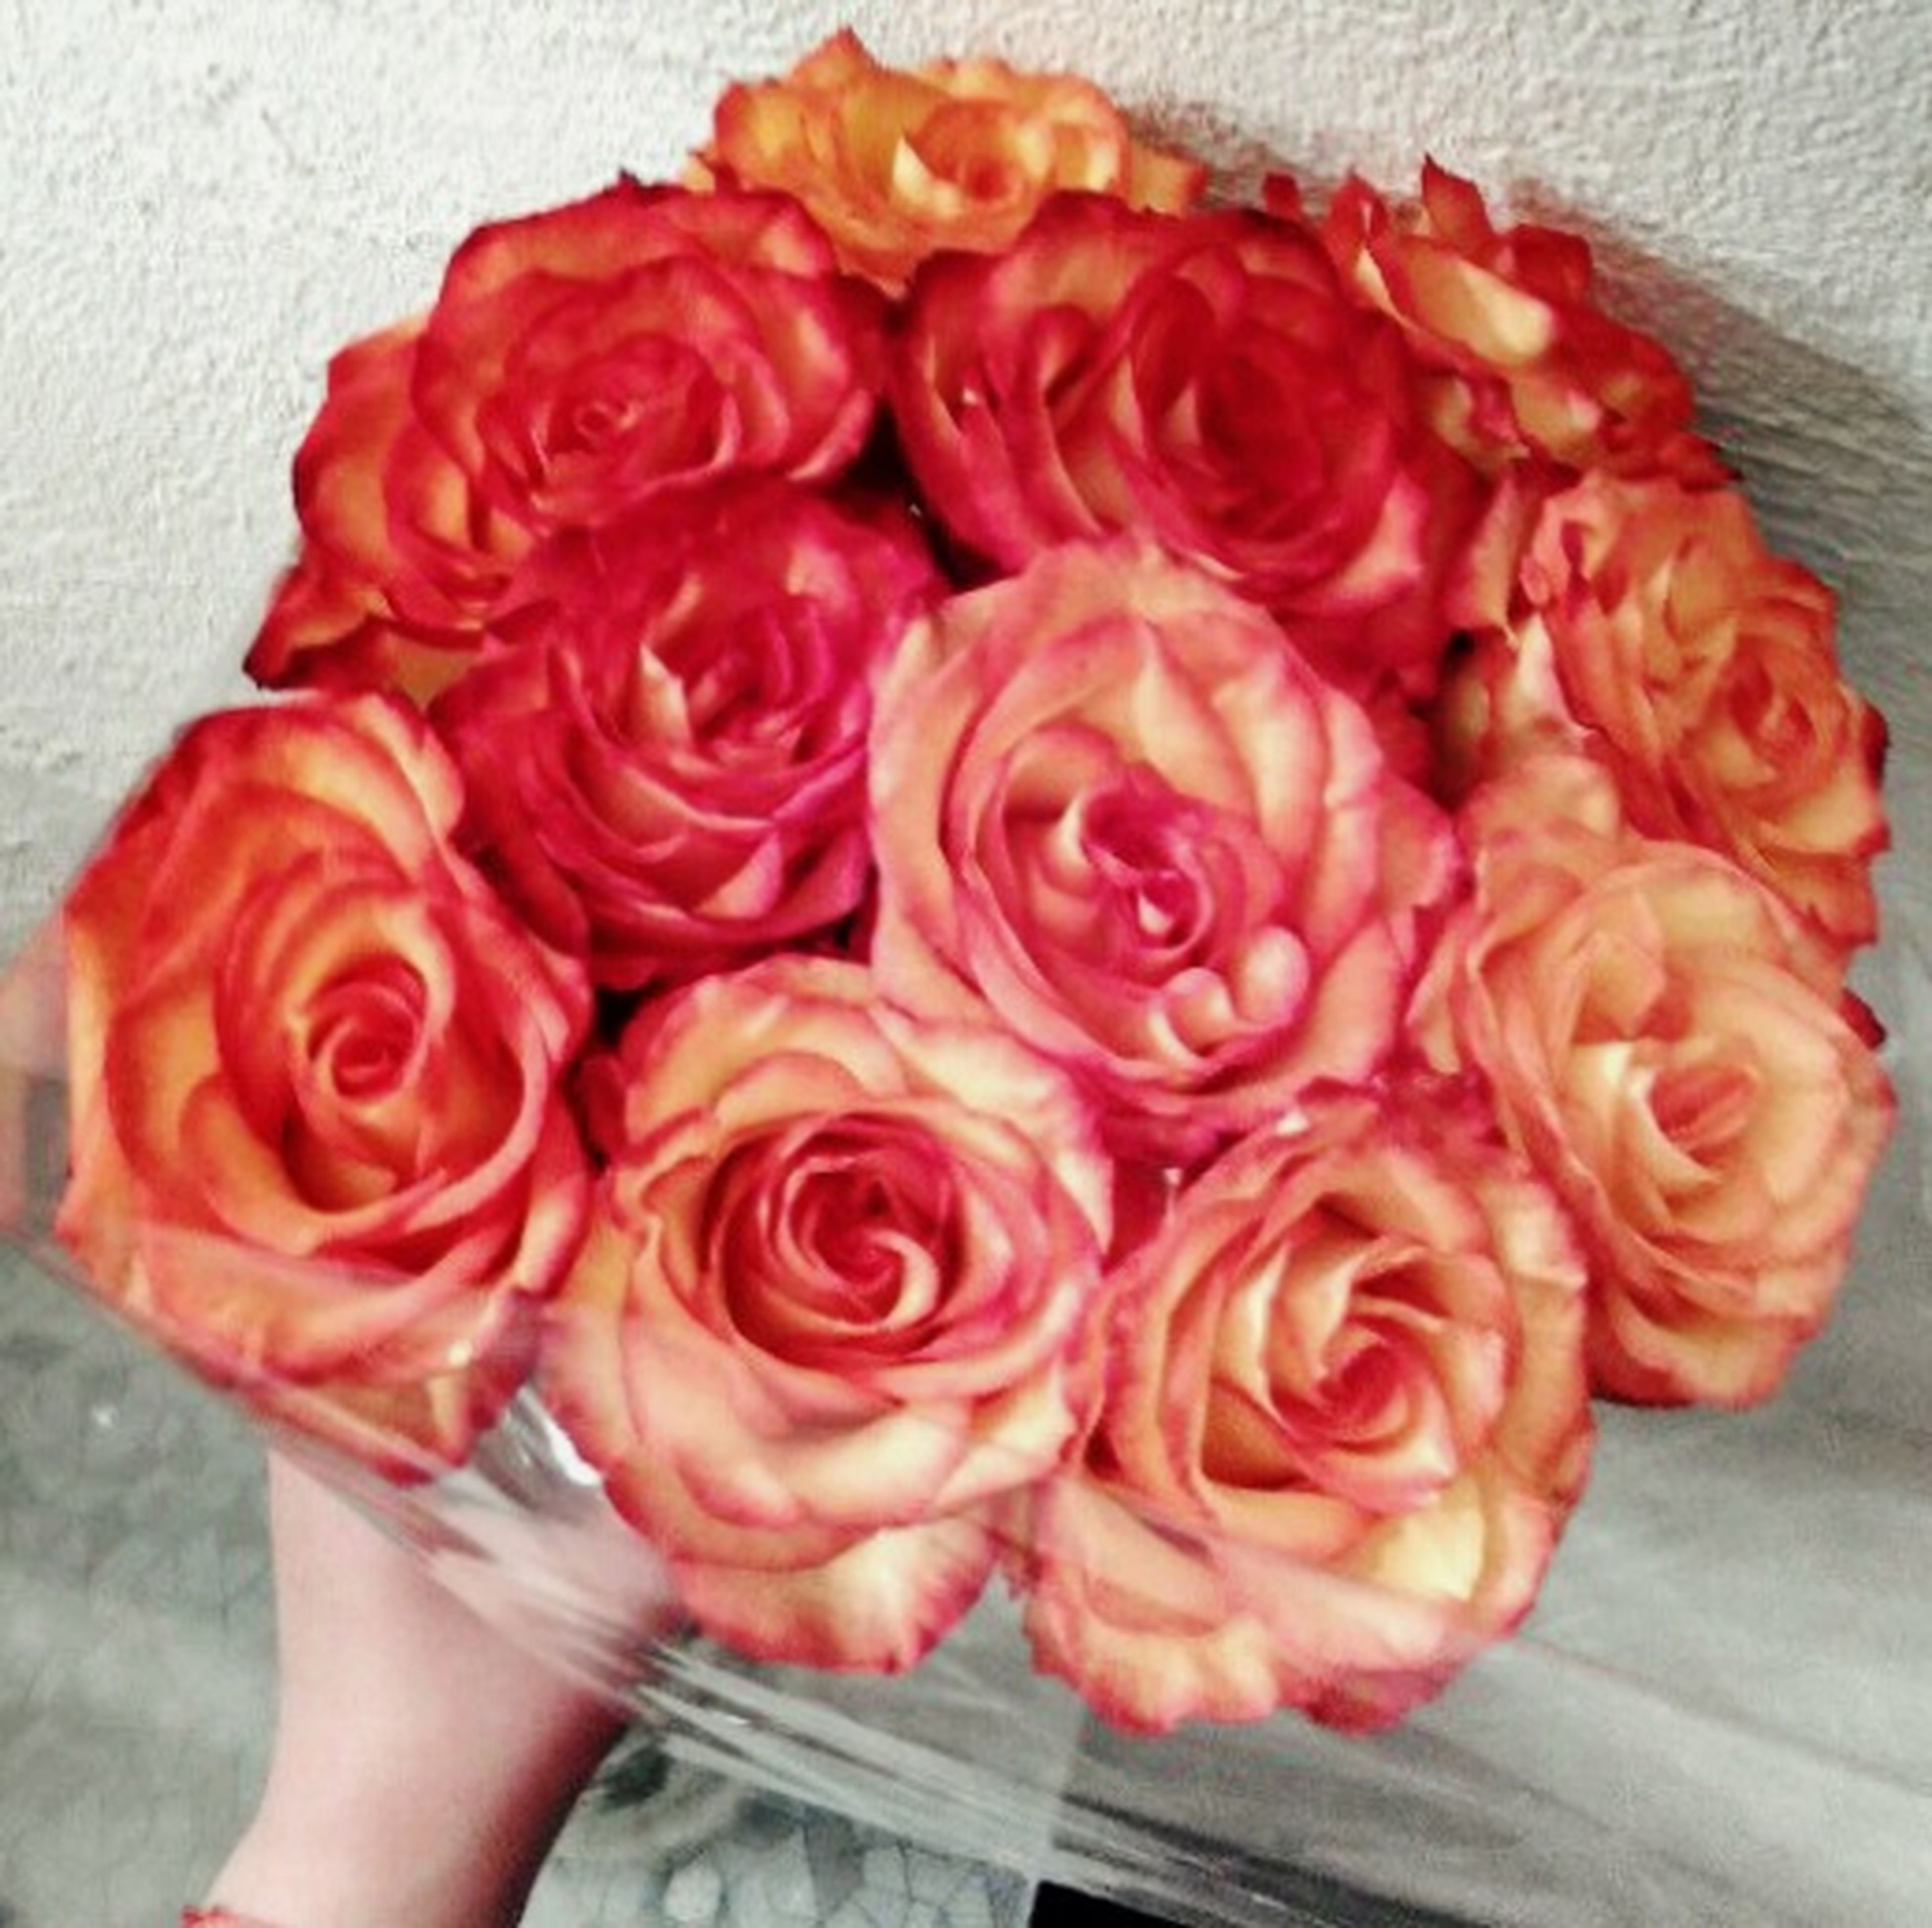 flower, freshness, petal, indoors, rose - flower, fragility, red, high angle view, flower head, bouquet, rose, person, pink color, close-up, holding, directly above, vase, beauty in nature